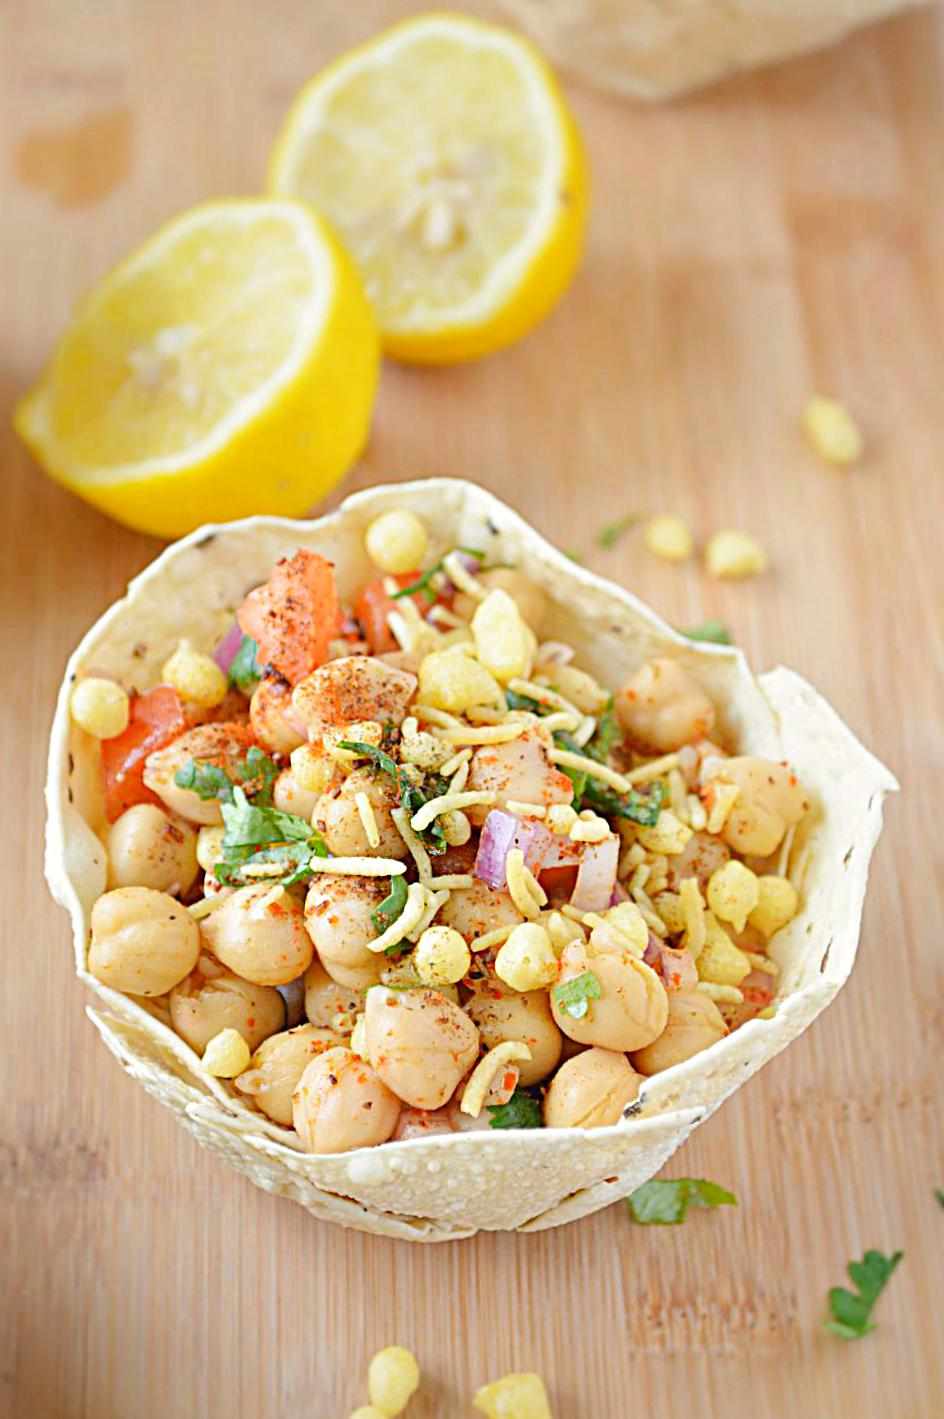 Papad Katori Chaat